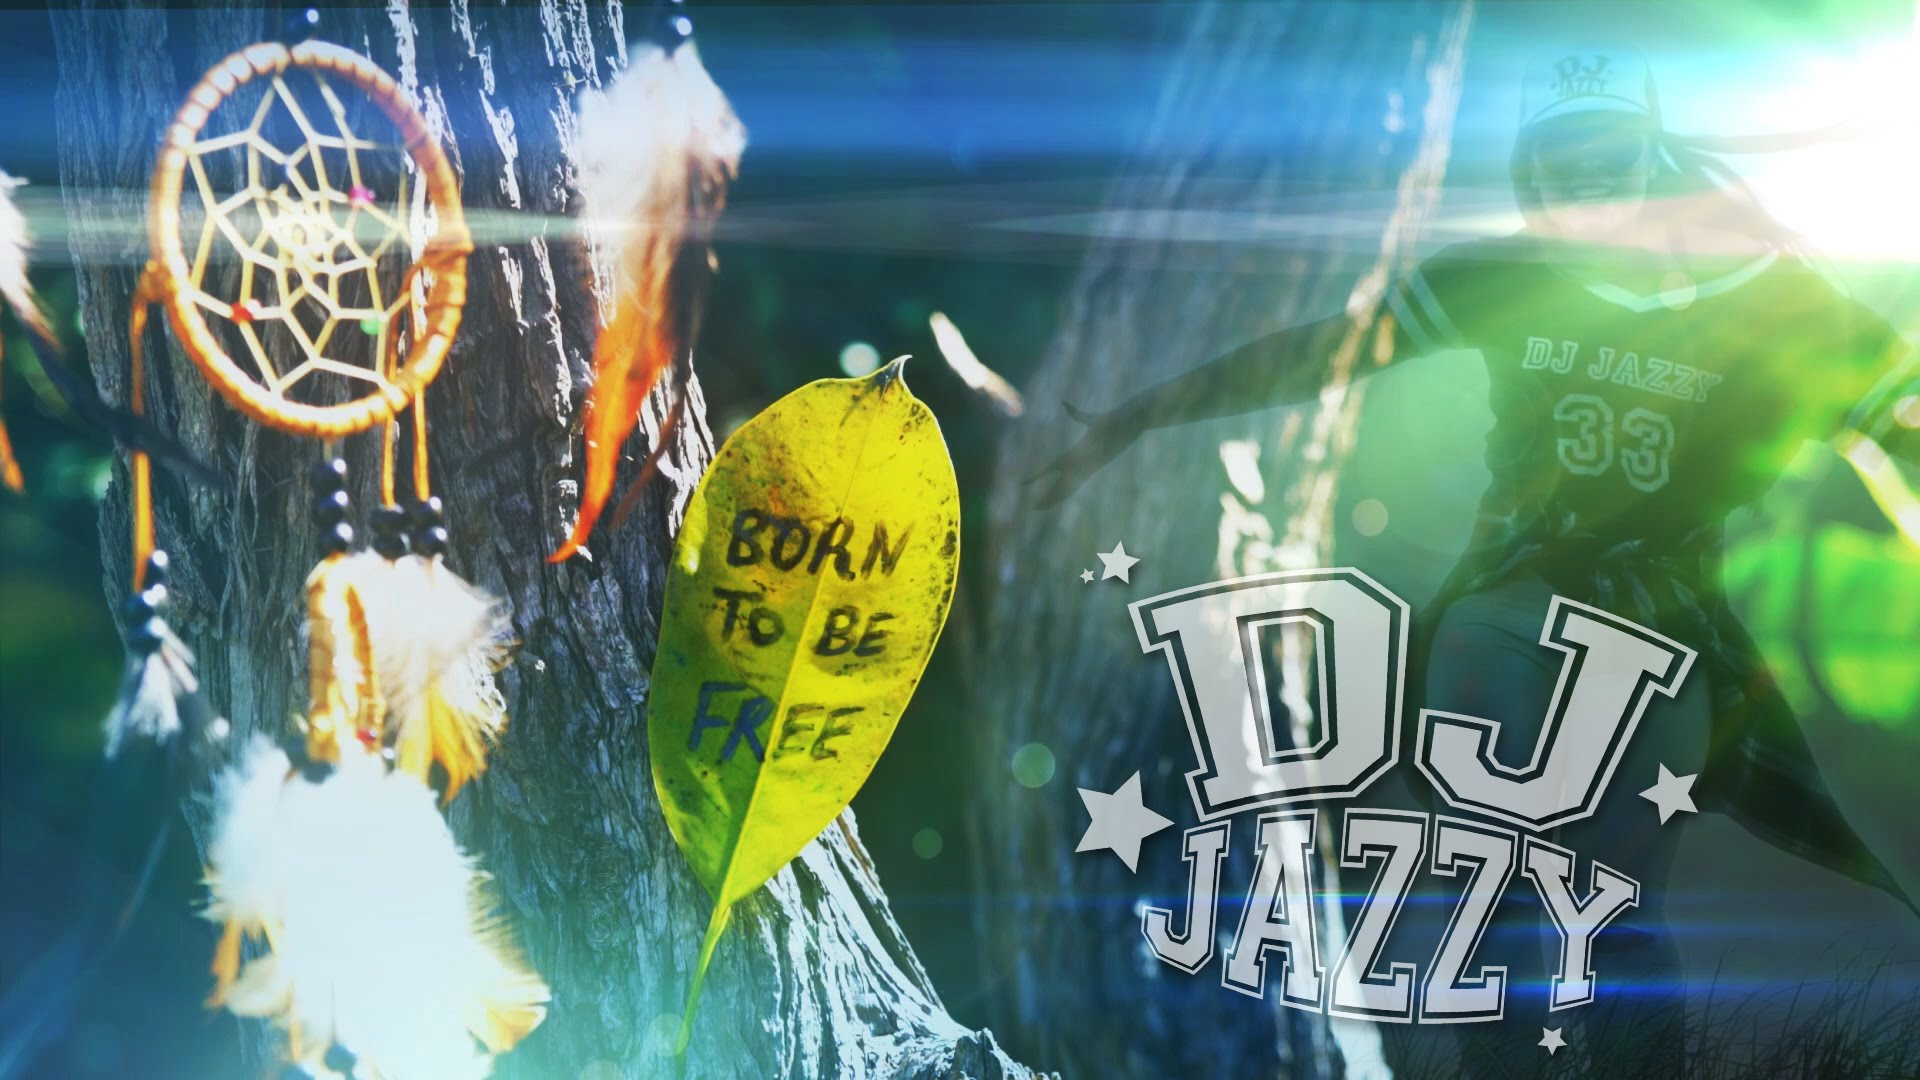 Born To Be Free – DJ JAZZY